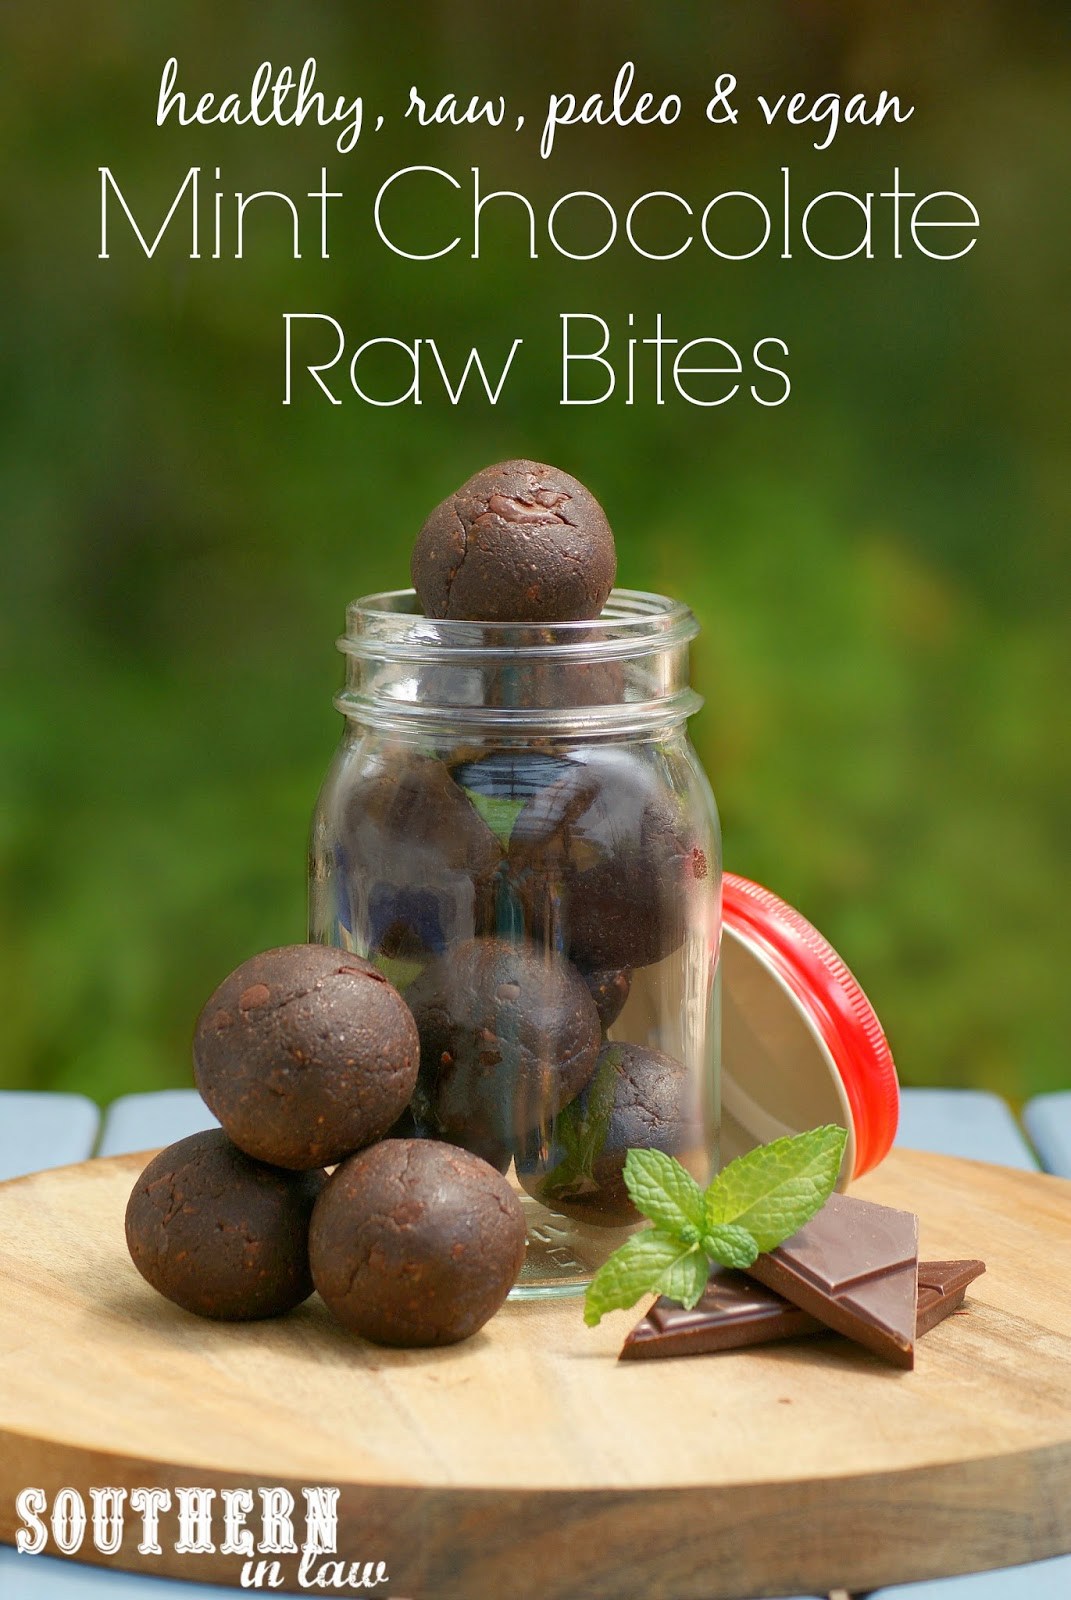 Mint Chocolate Raw Bites Recipe - Gluten Free, Healthy, Low Fat, Paleo, Clean Eating Friendly, Grain Free, Peanut Free, Egg Free, Vegan